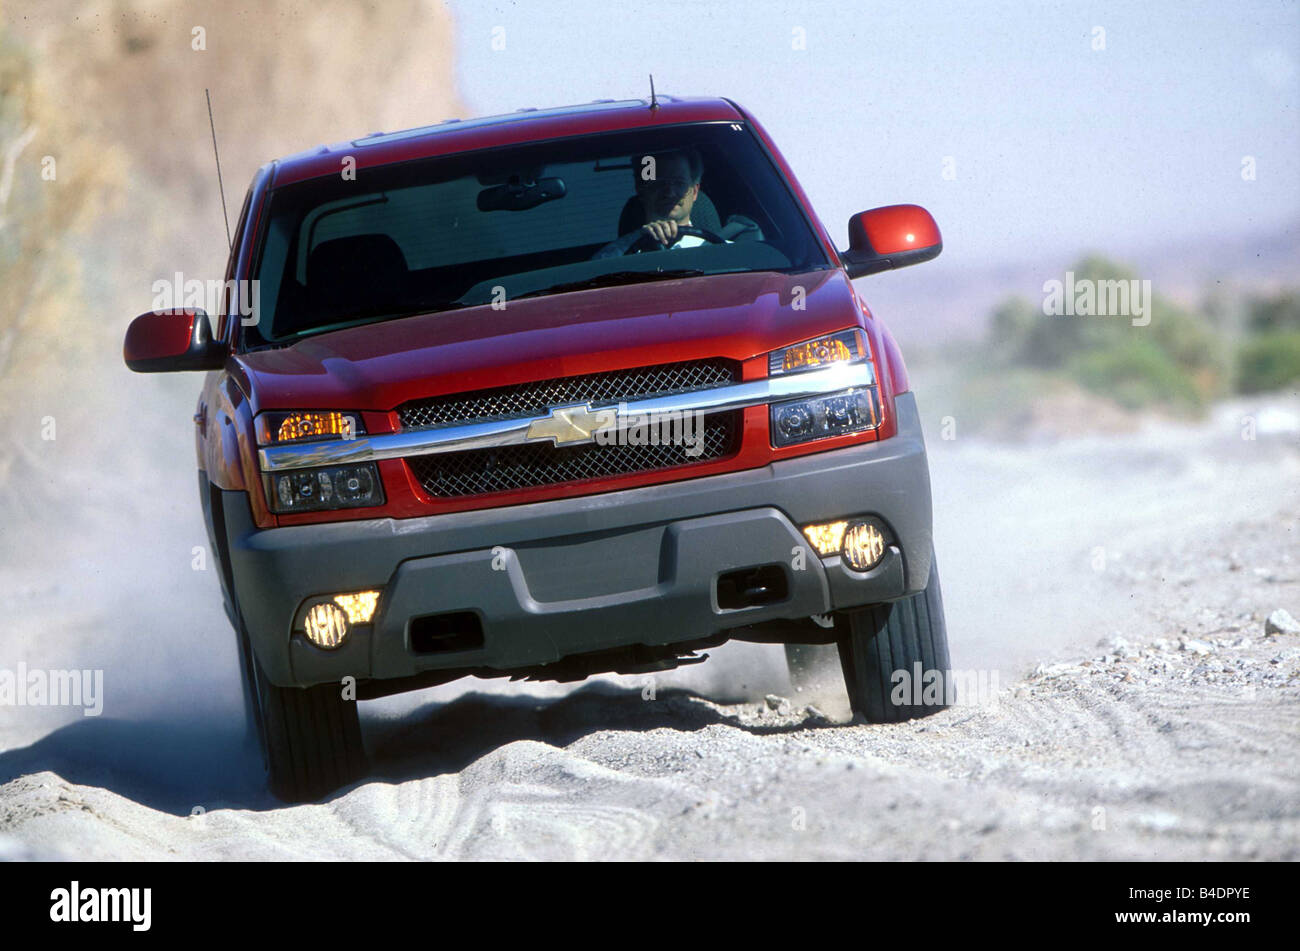 Car, Chevrolet Avalanche 1500 4WD, cross country vehicle, model year 2001-, red, ruby colored, frontal view, offroad, - Stock Image